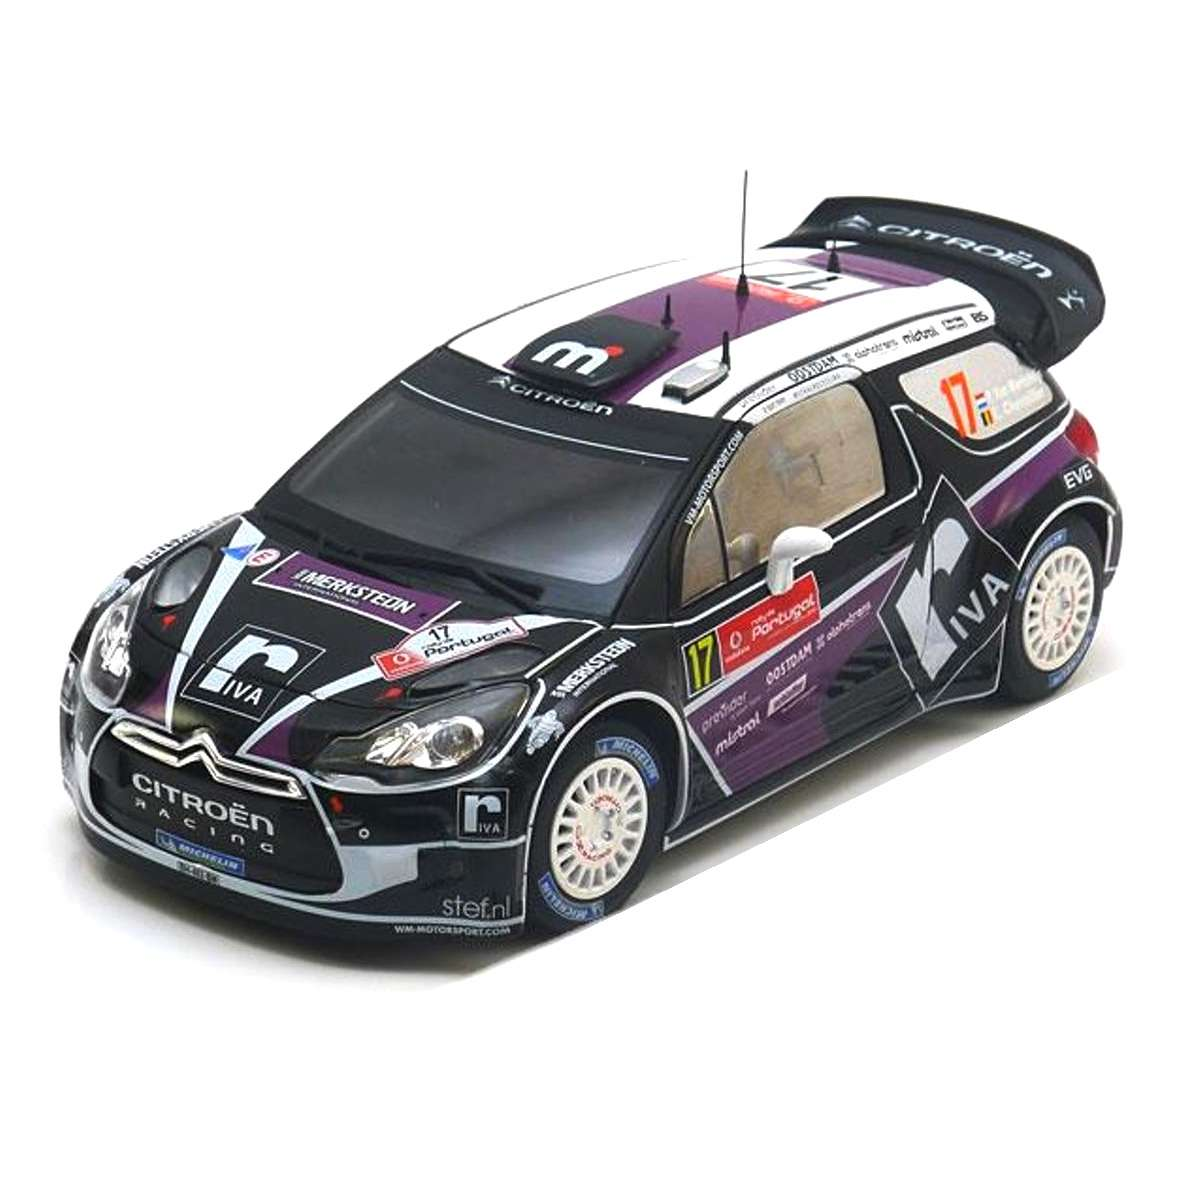 Diecast Car 1/18: Rally - Citroen DS3 WRC, Rallye Portugal 2012 Photo